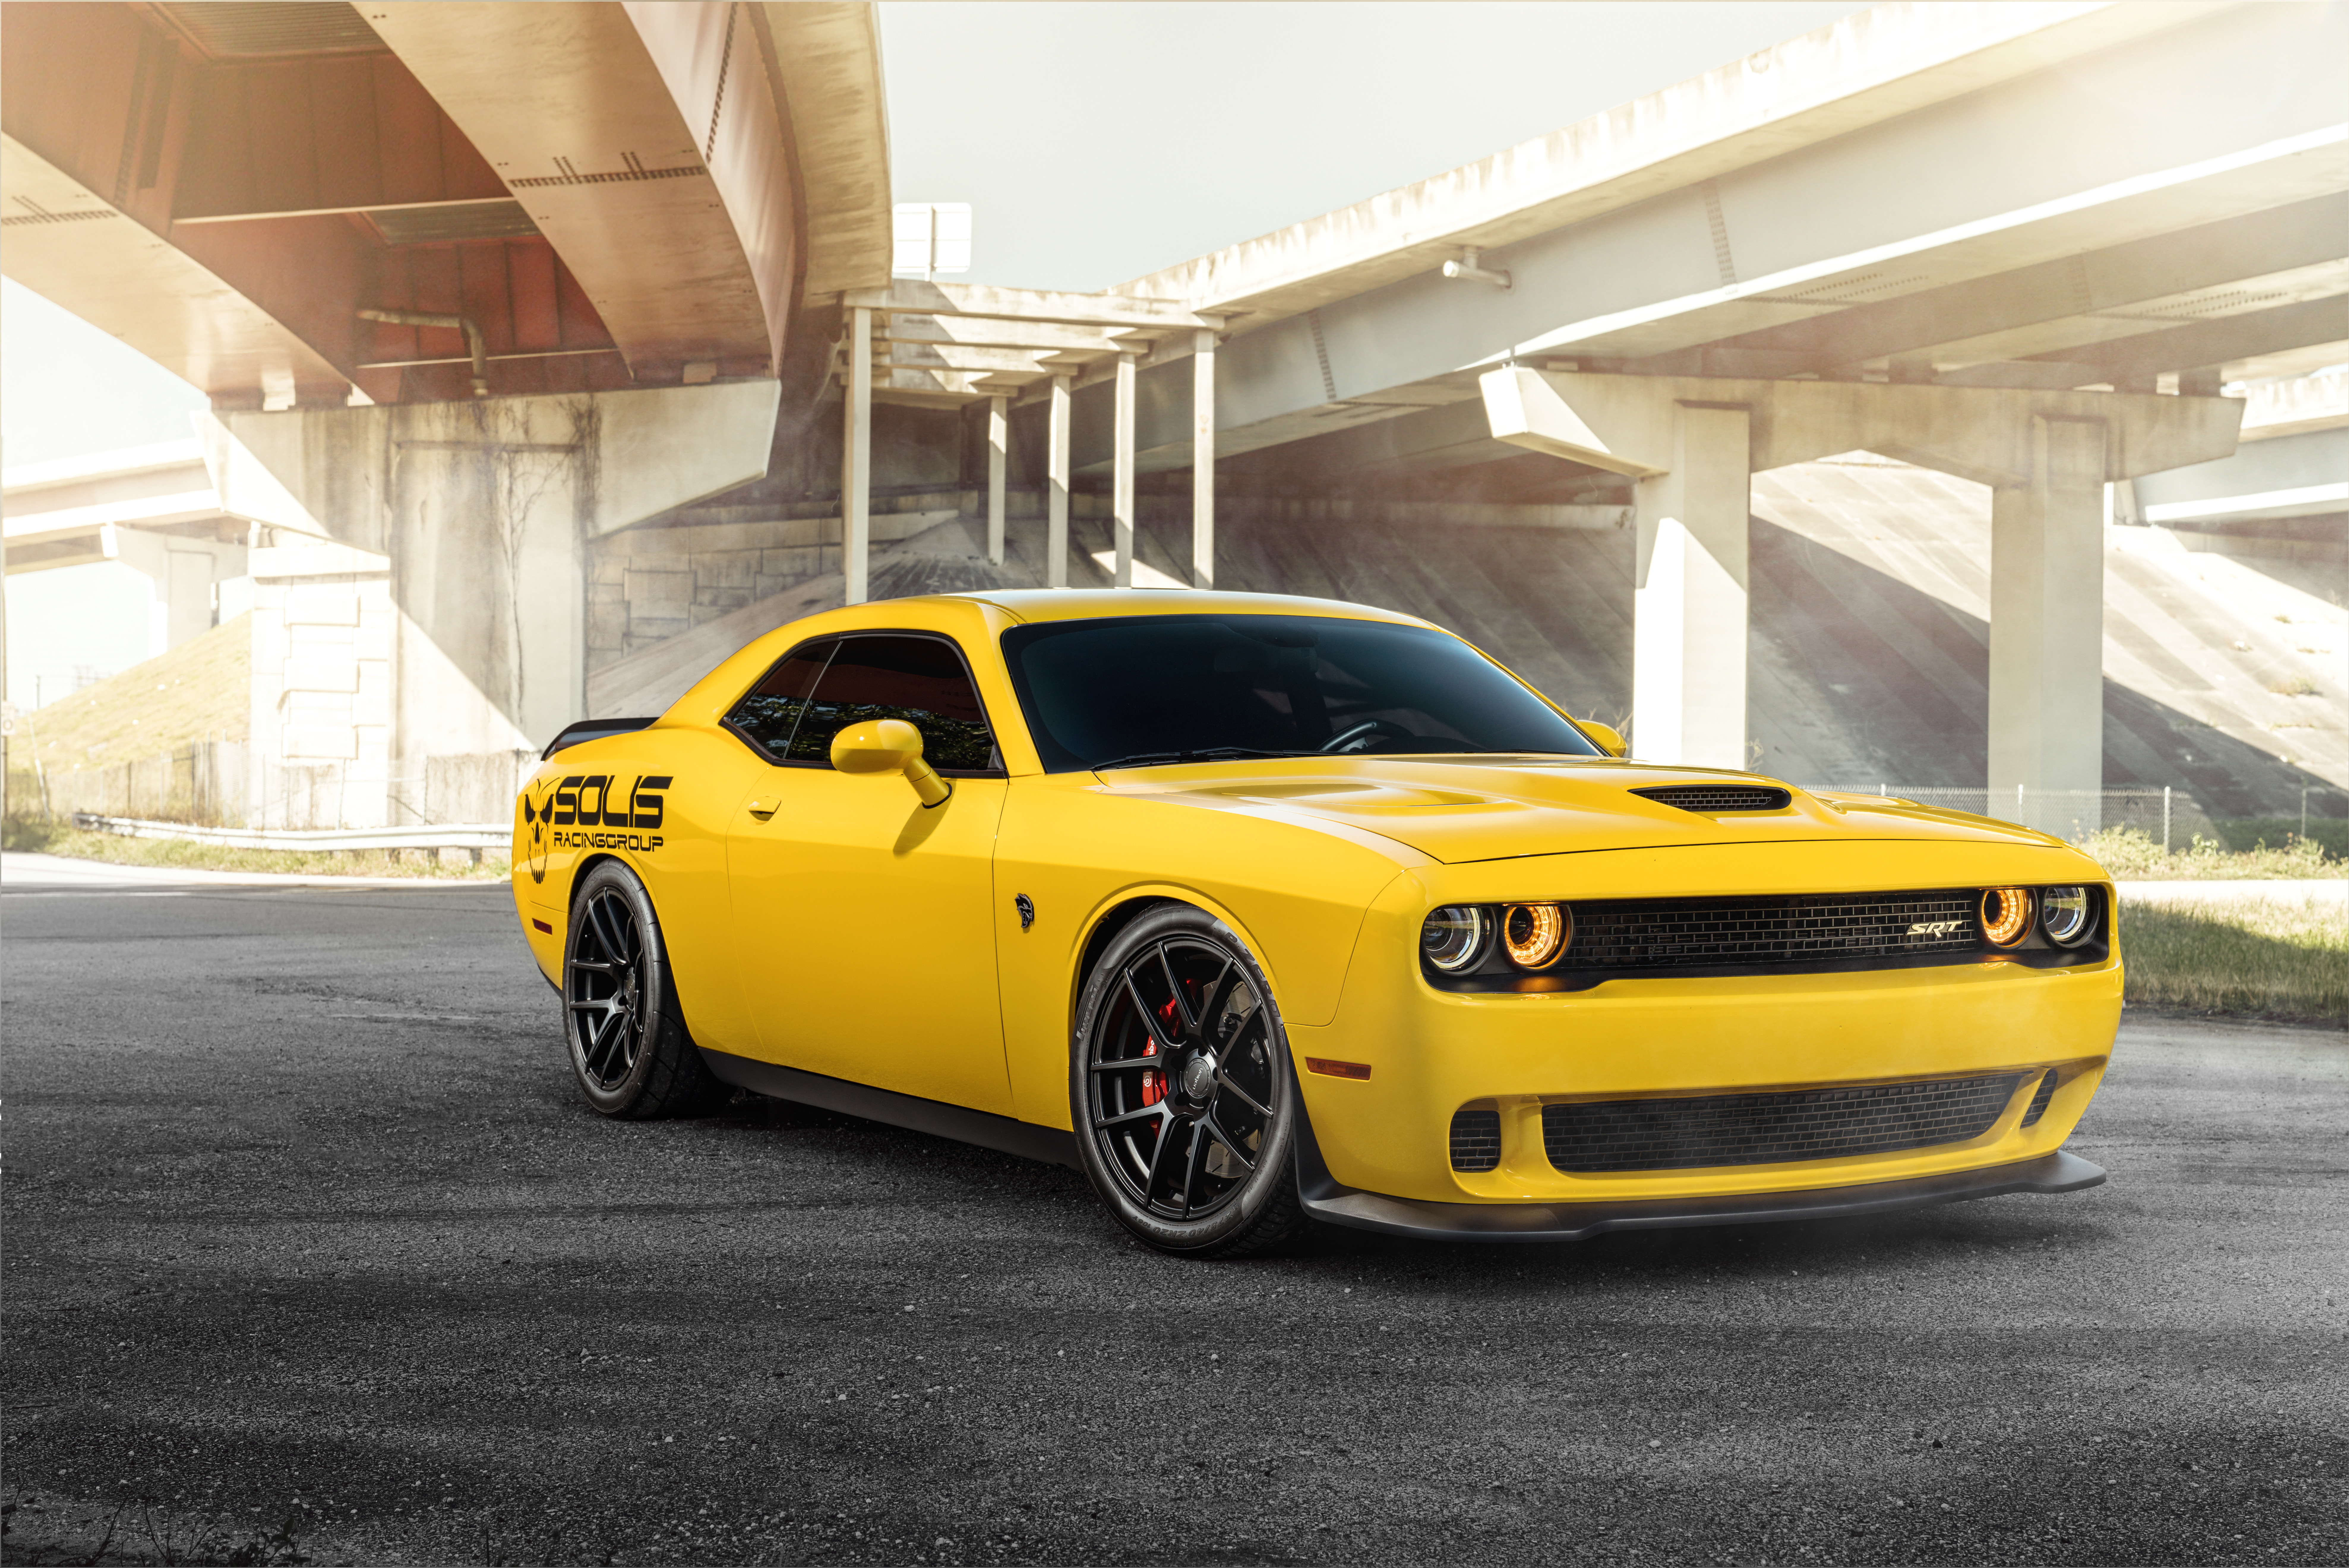 7680x4320 Dodge Charger Srt Hellcat 2018 8k 8k Hd 4k Wallpapers Images Backgrounds Photos And Pictures